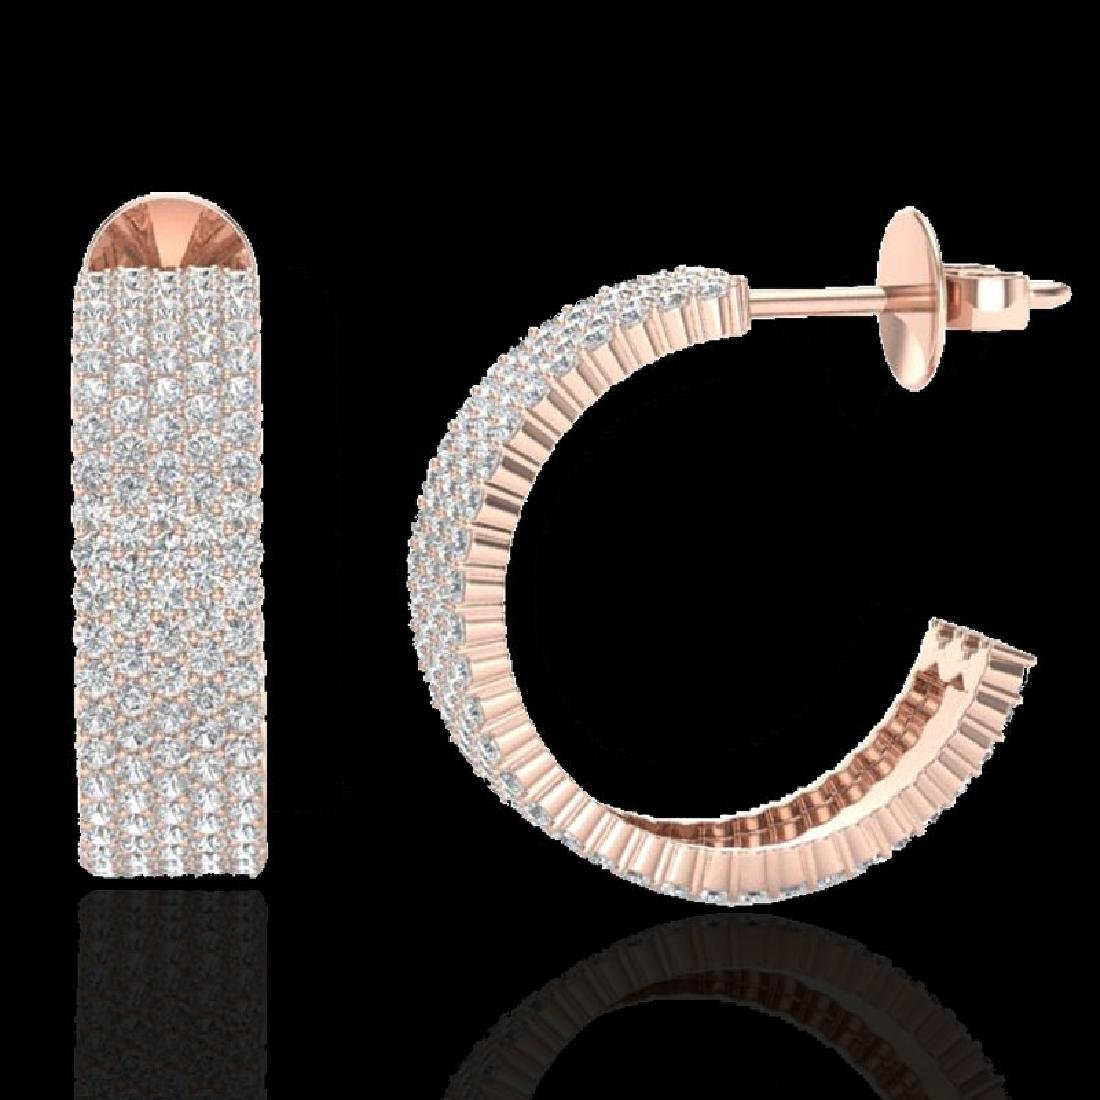 4.50 CTW Micro Pave VS/SI Diamond Earrings 14K Rose - 2